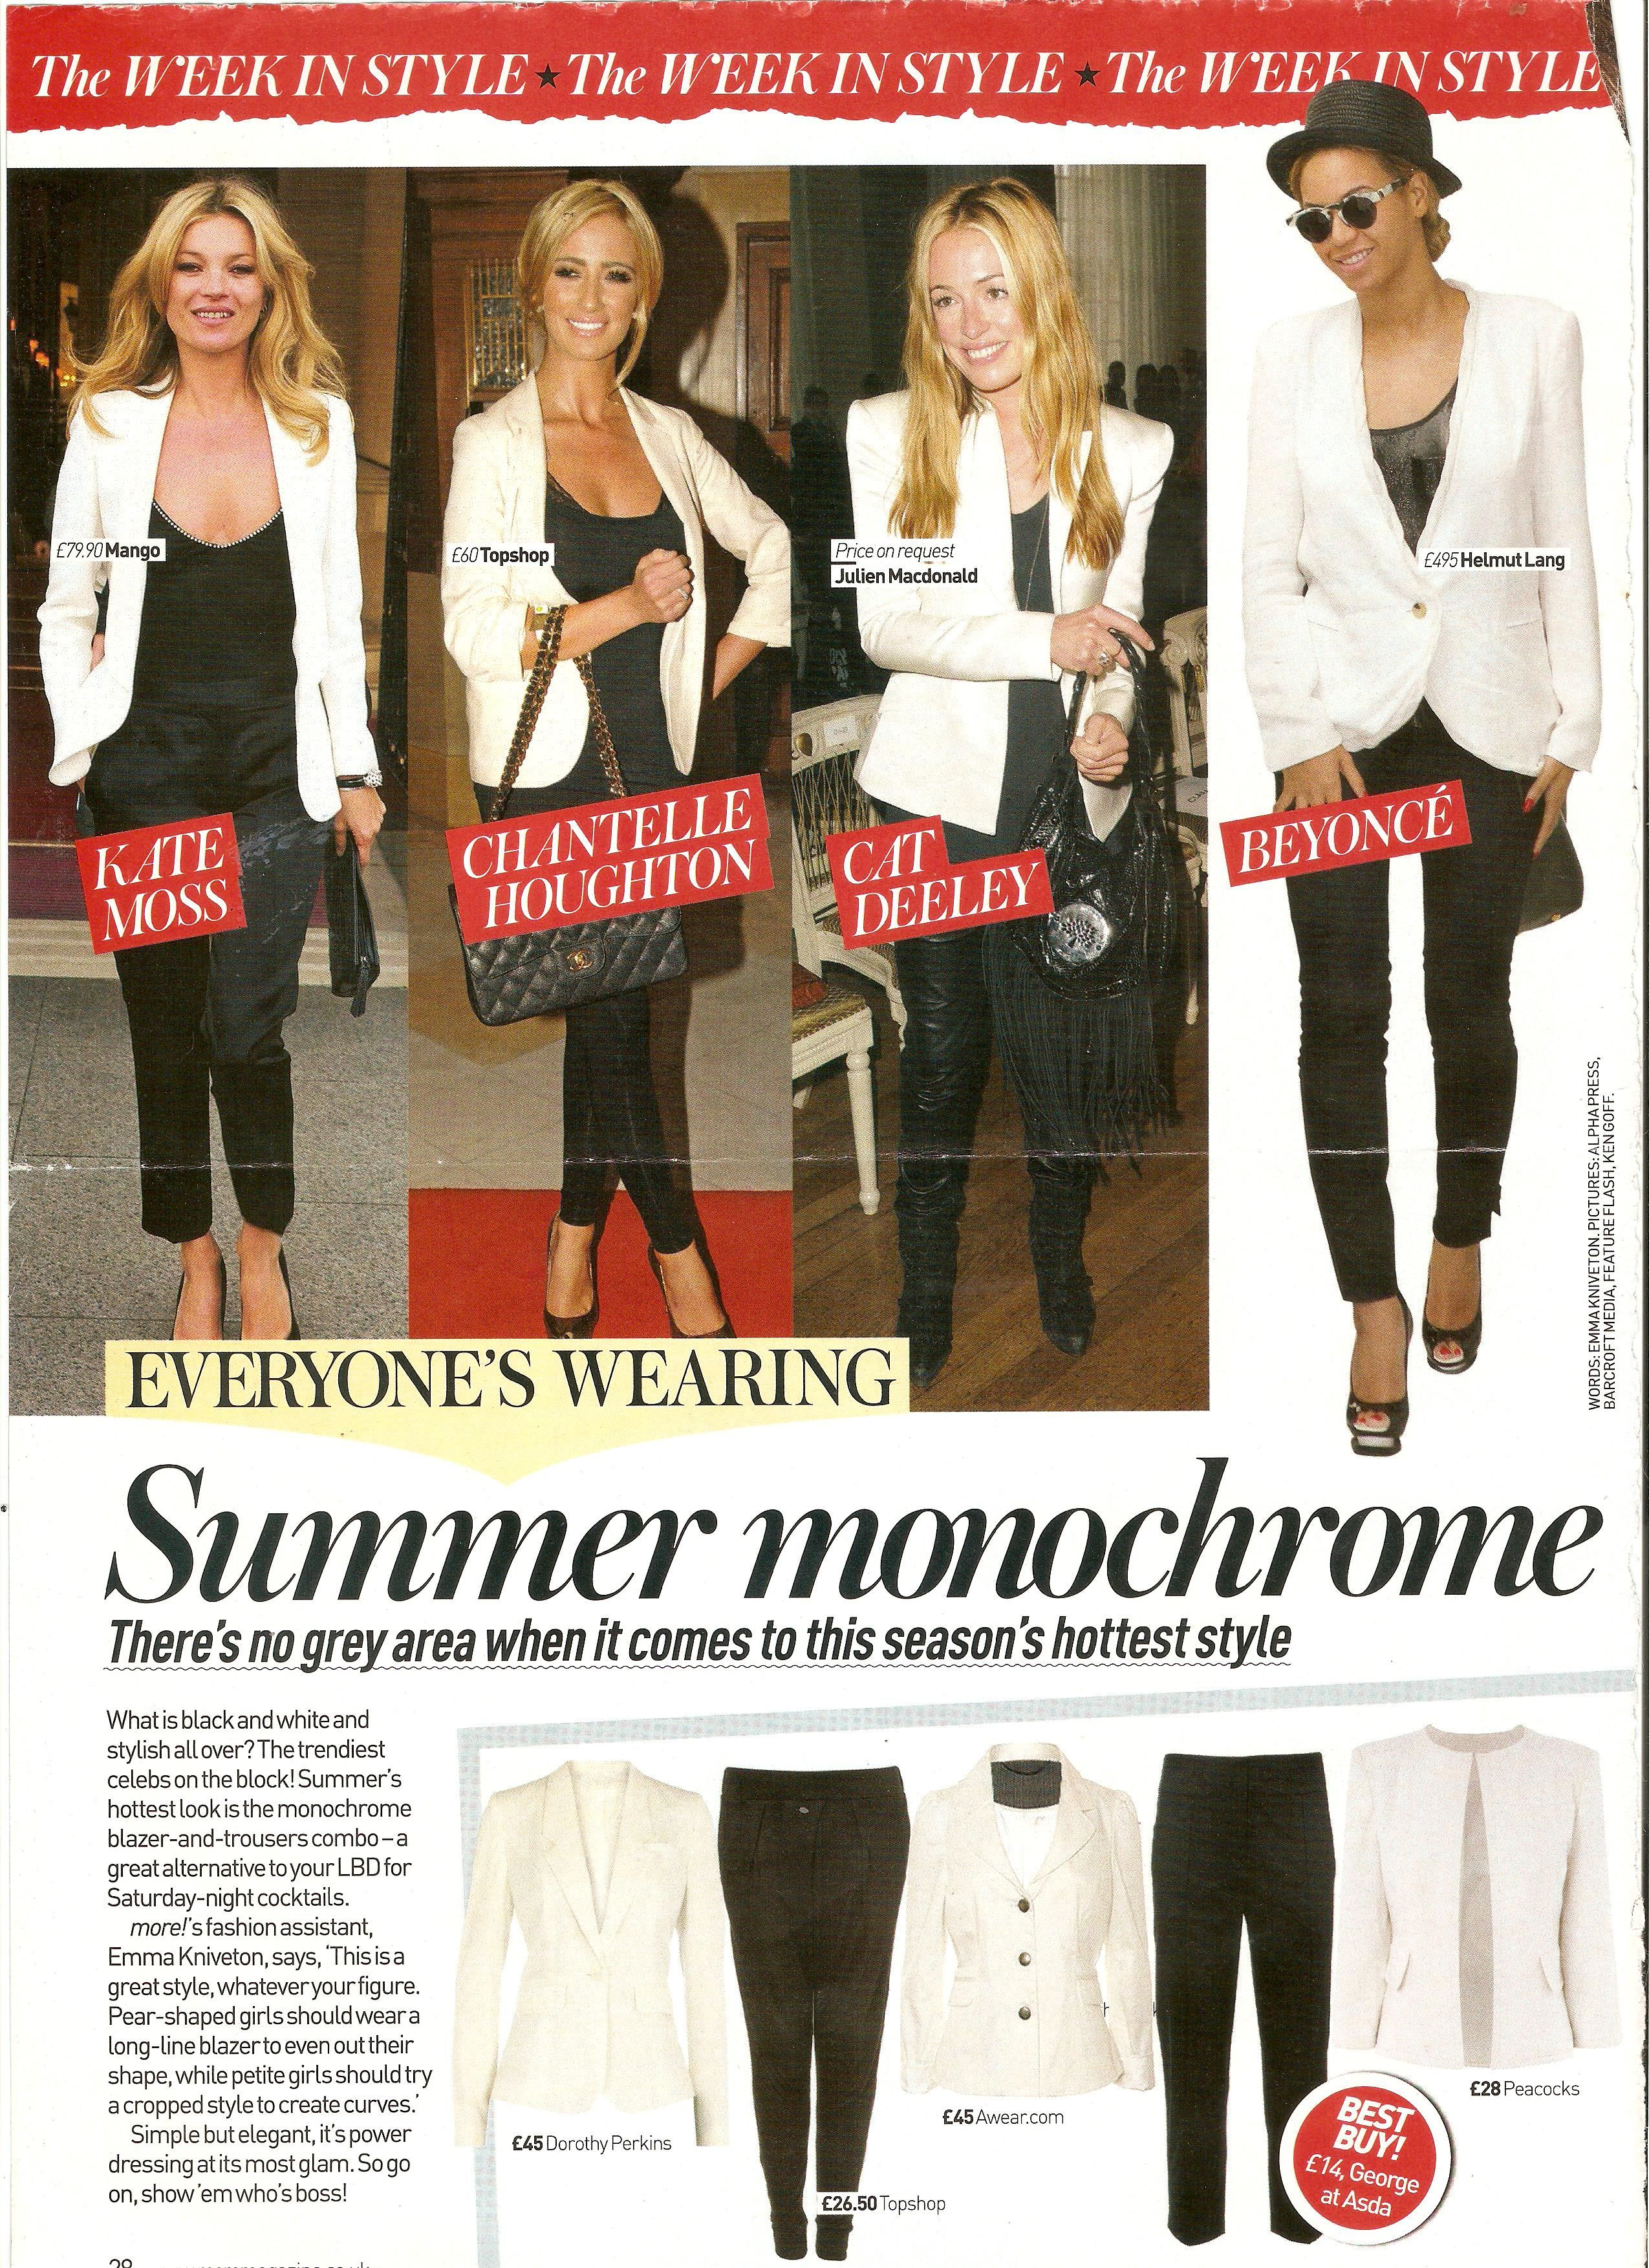 Summer Monochrome in More! Magazine written by Emma Kniveton featuring Kate Moss, Chantelle Houghton, Cat Deely & Beyonce